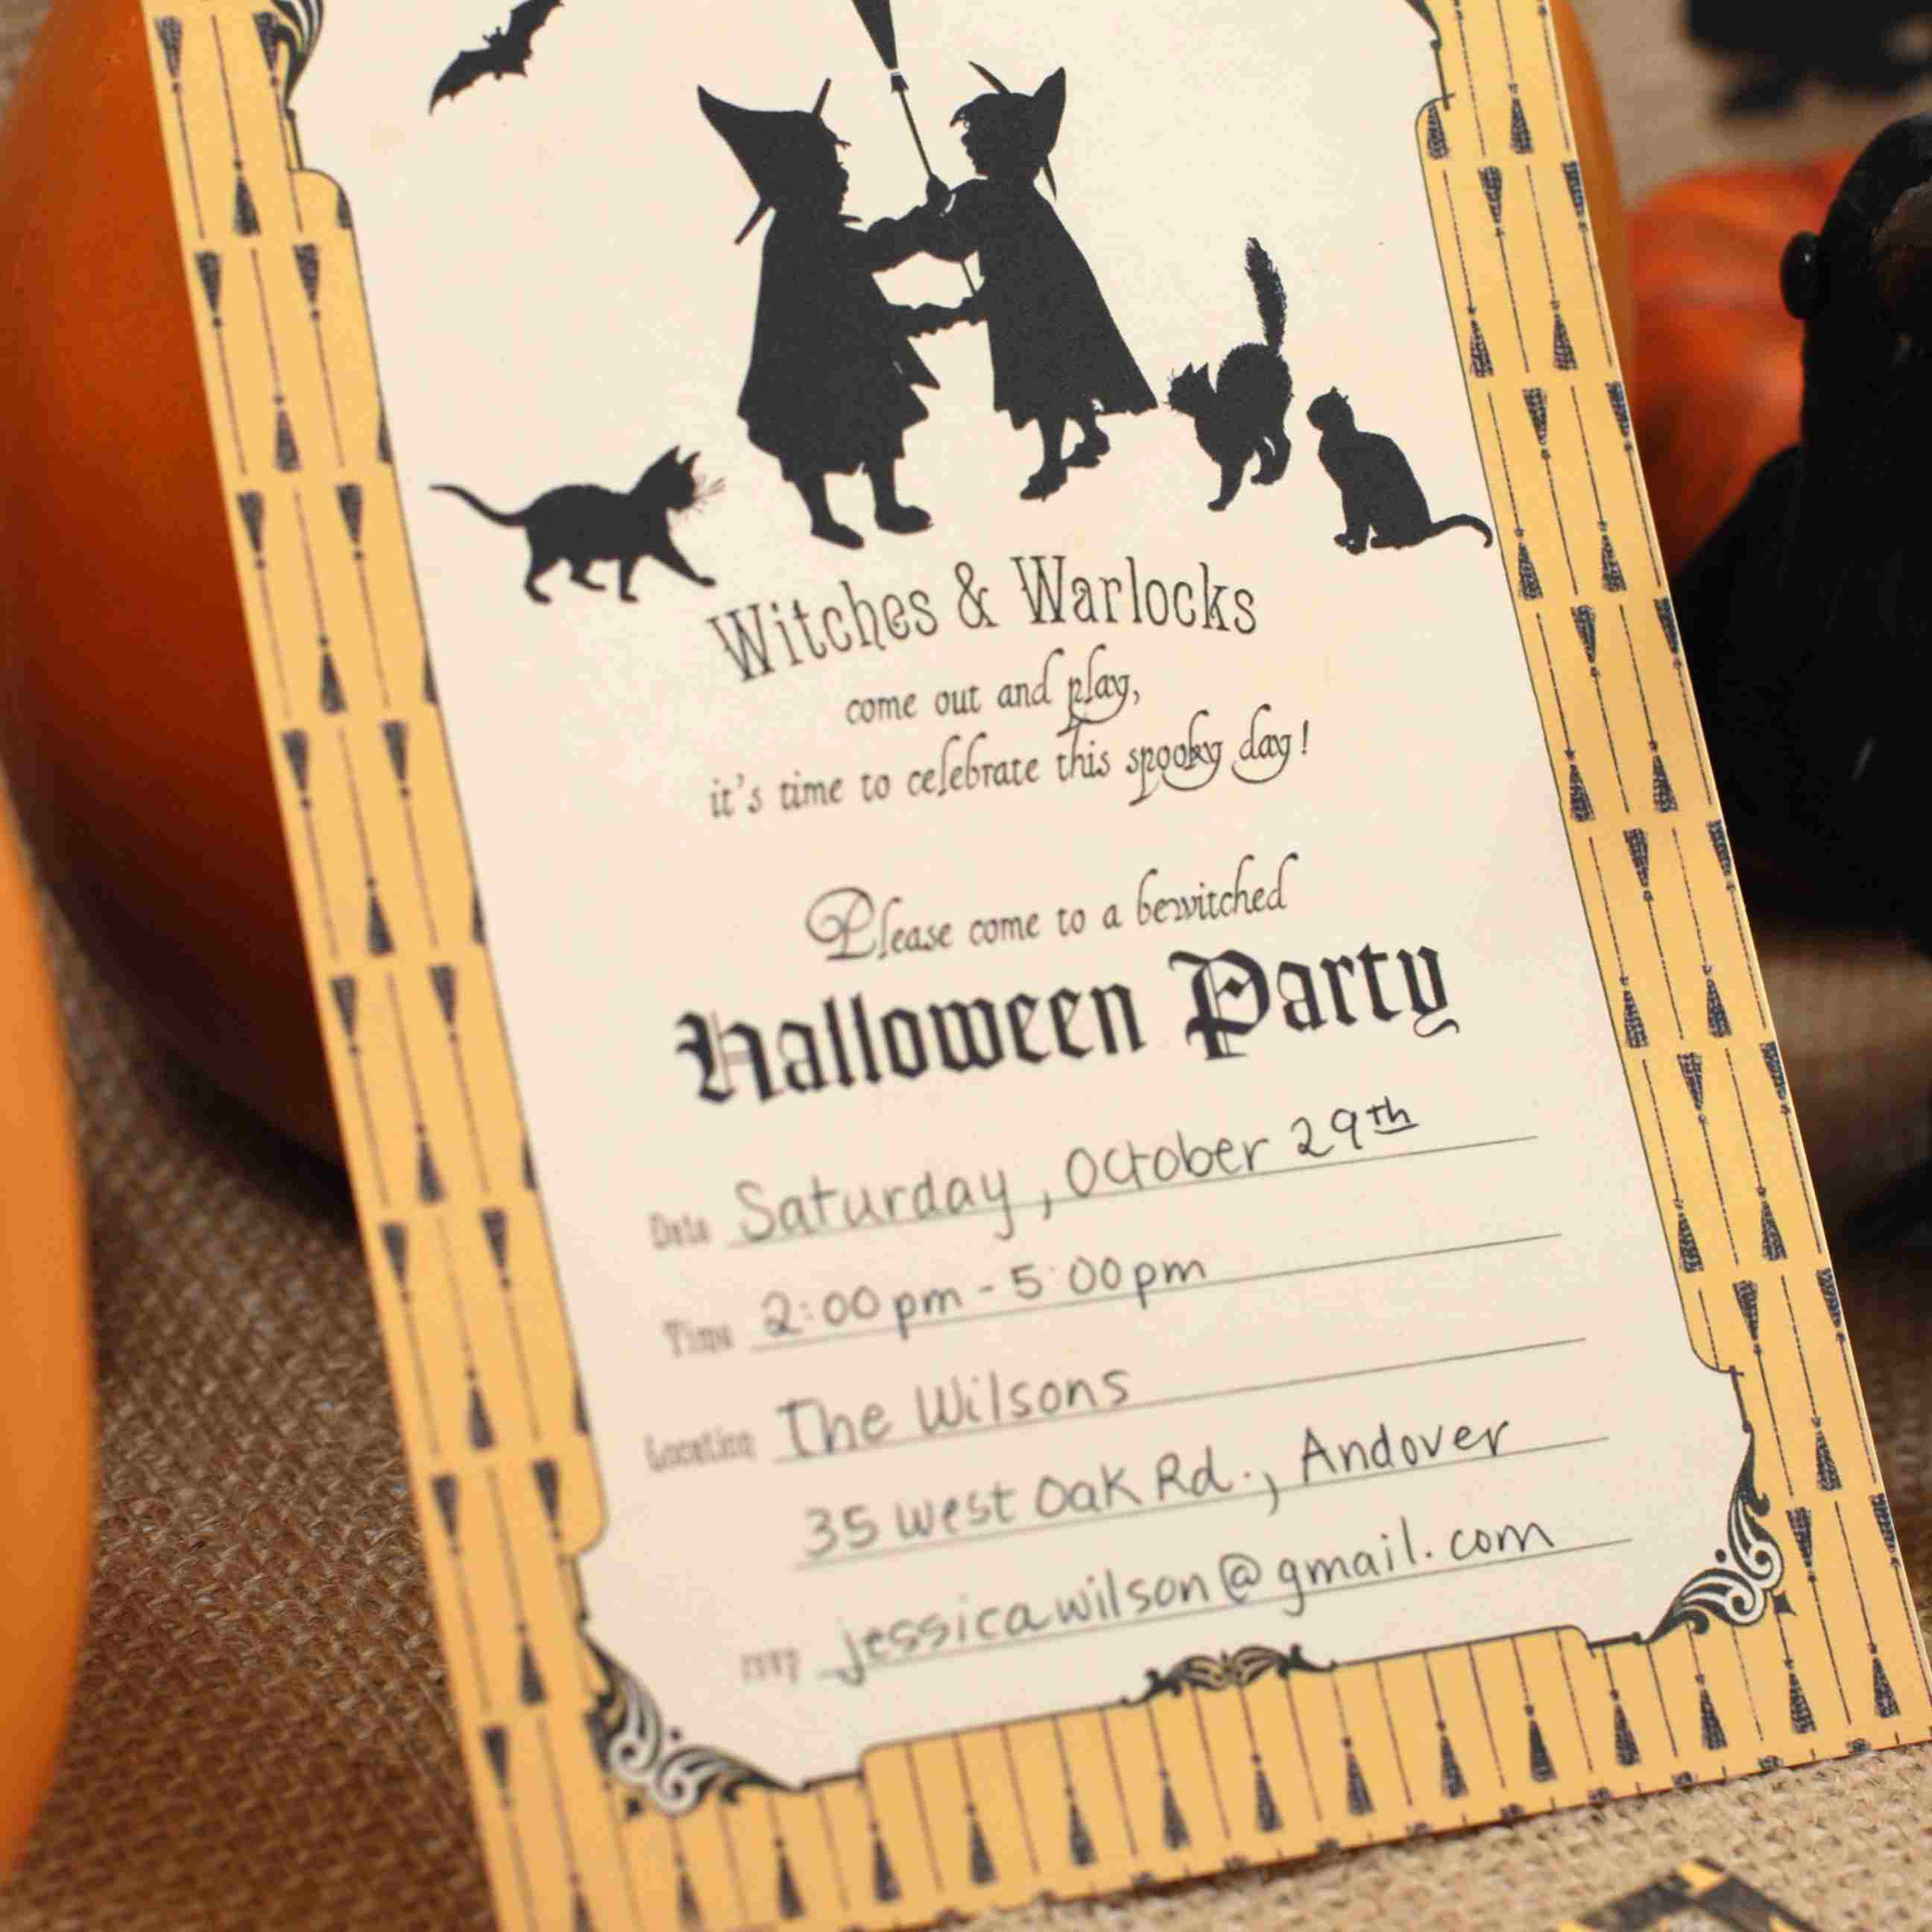 A Halloween Party Invitation Standing Up Against Pumpkin